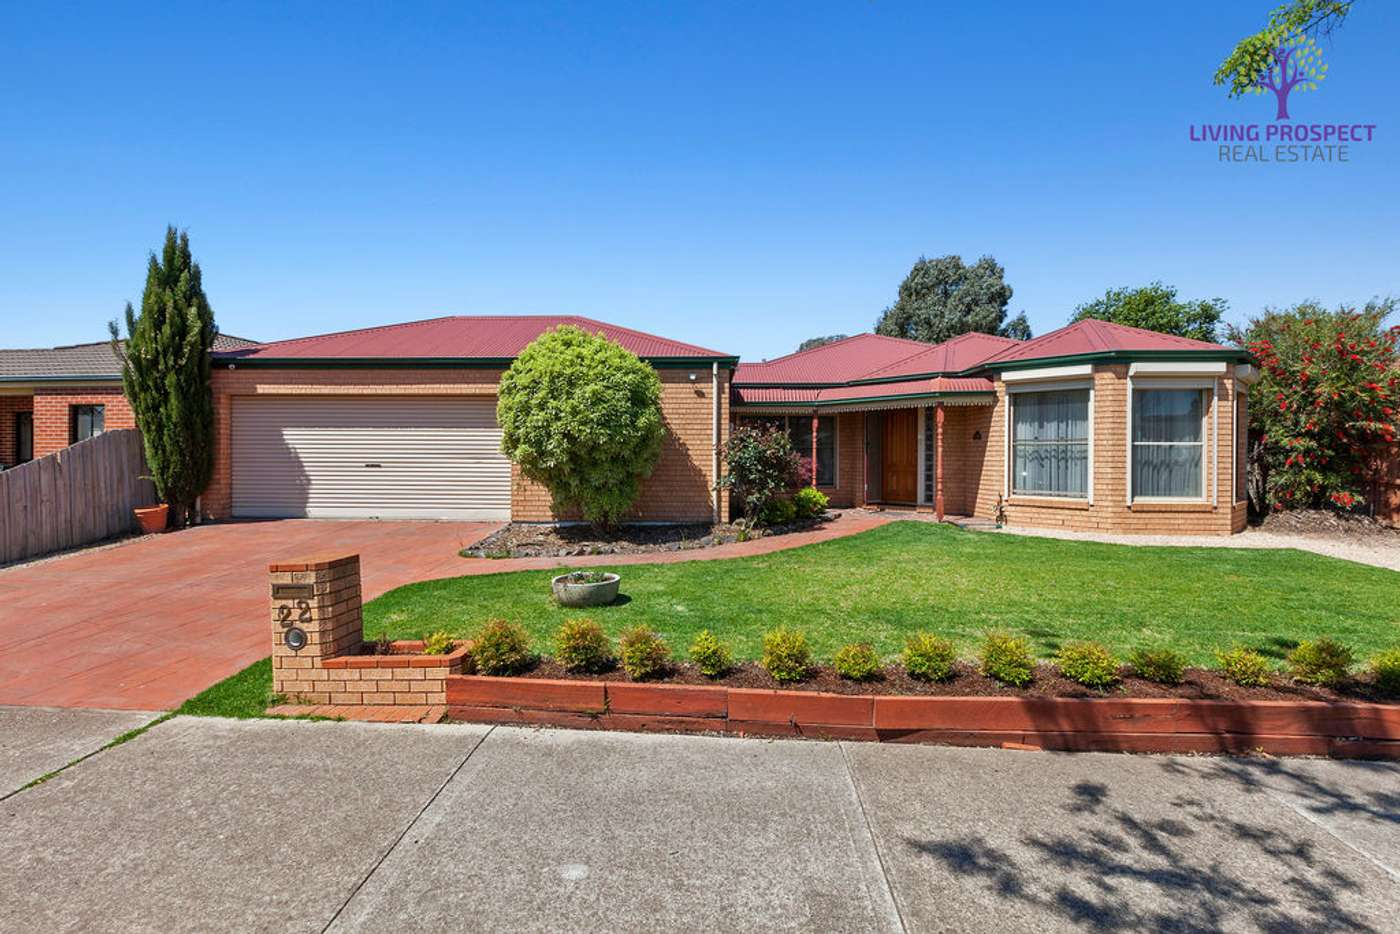 Main view of Homely house listing, 22 Willowgreen Way, Point Cook VIC 3030